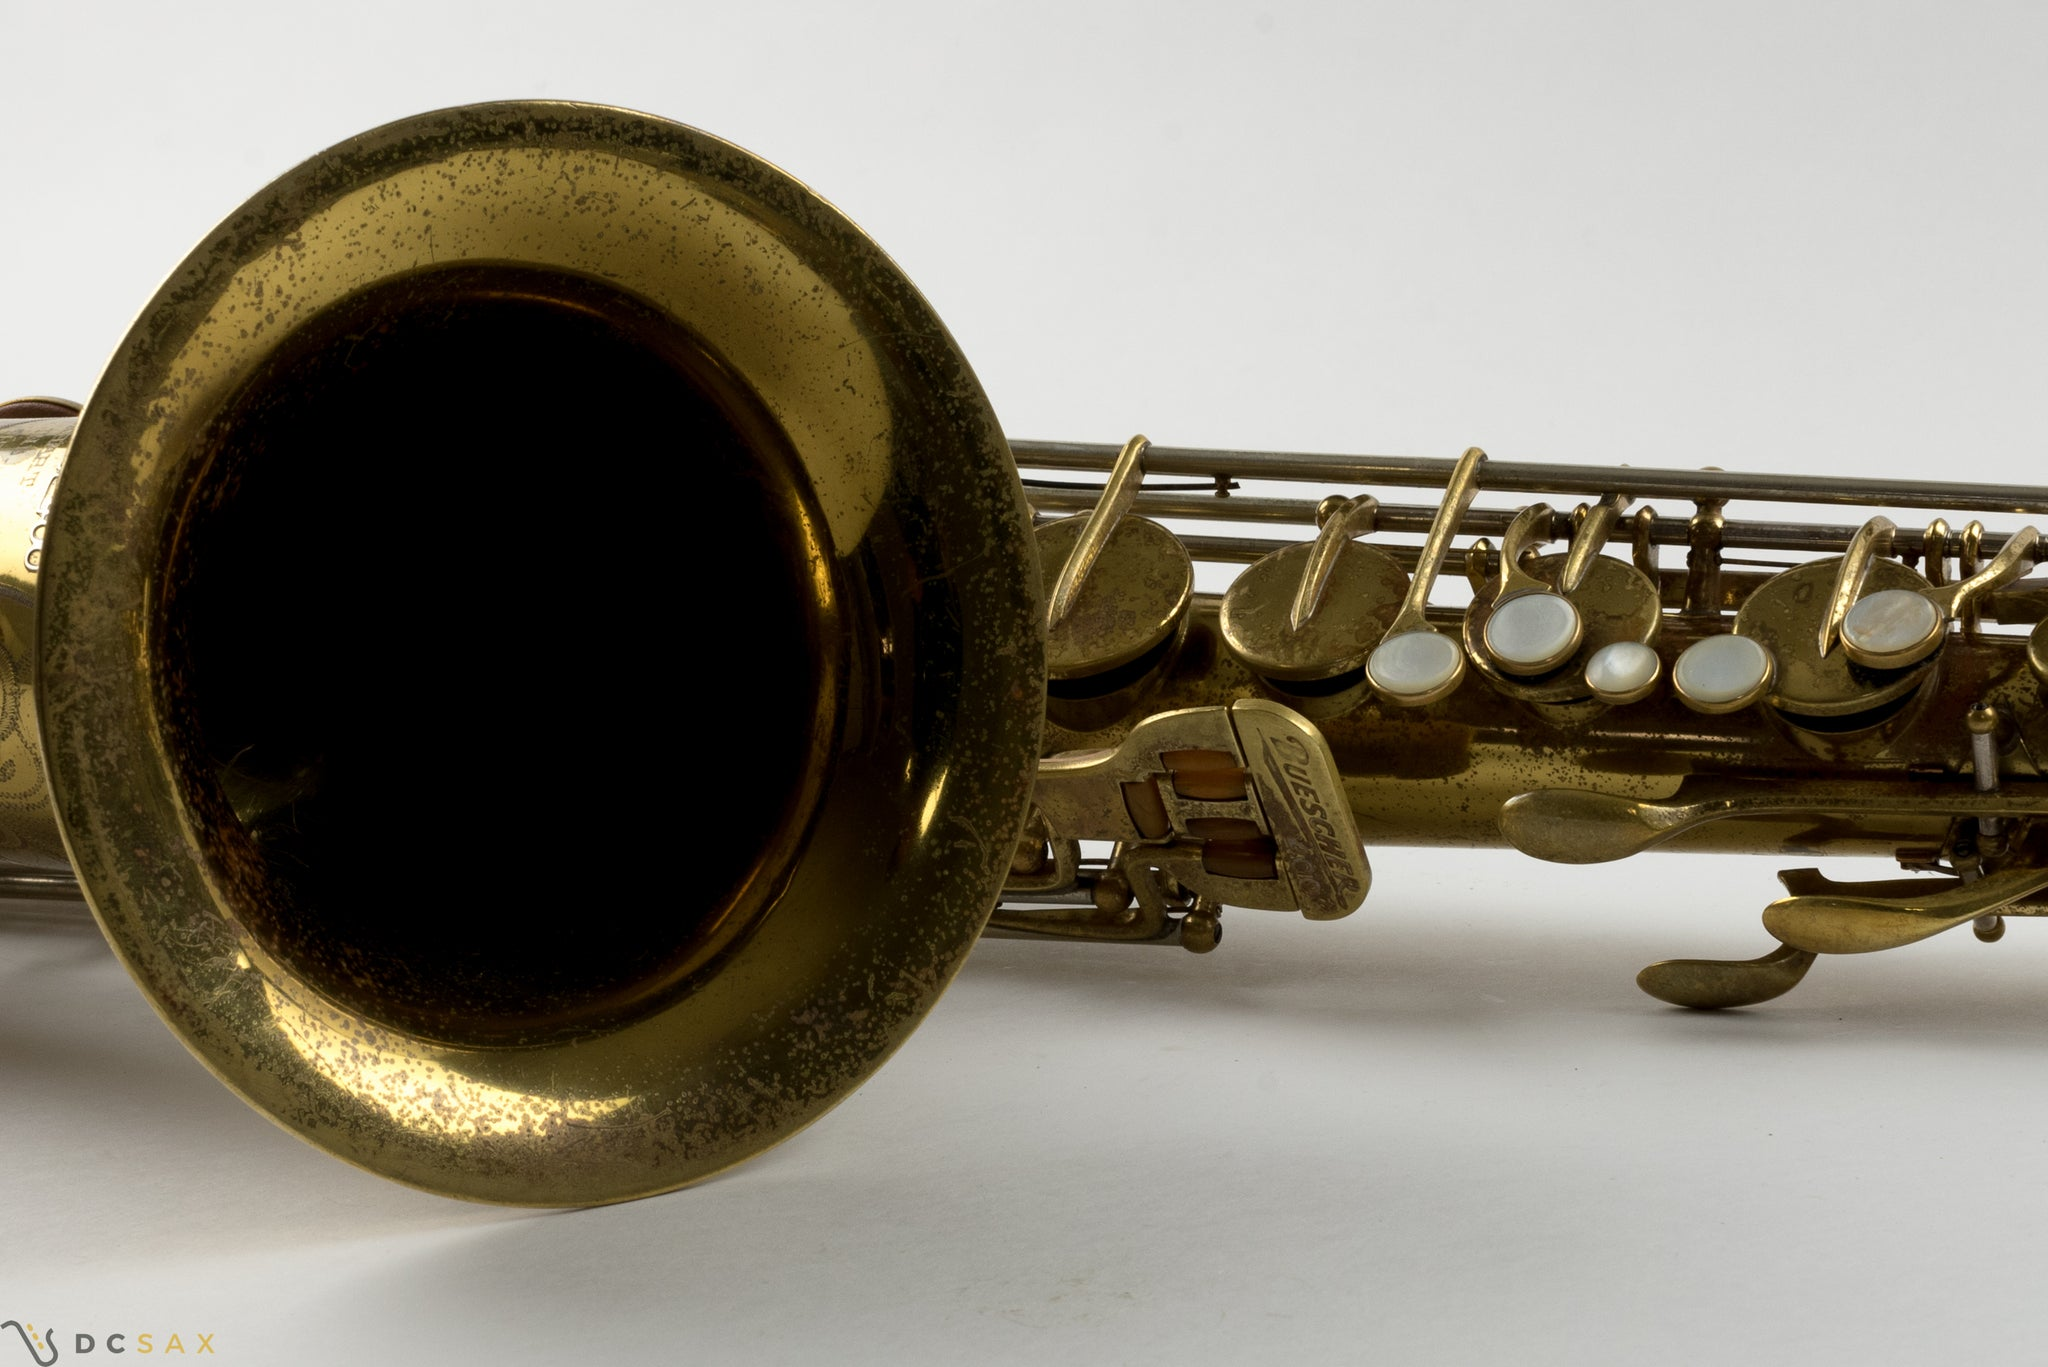 1949 Buescher 400 Top Hat and Cane Tenor Saxophone, Fresh Overhaul, Original Lacquer, Video